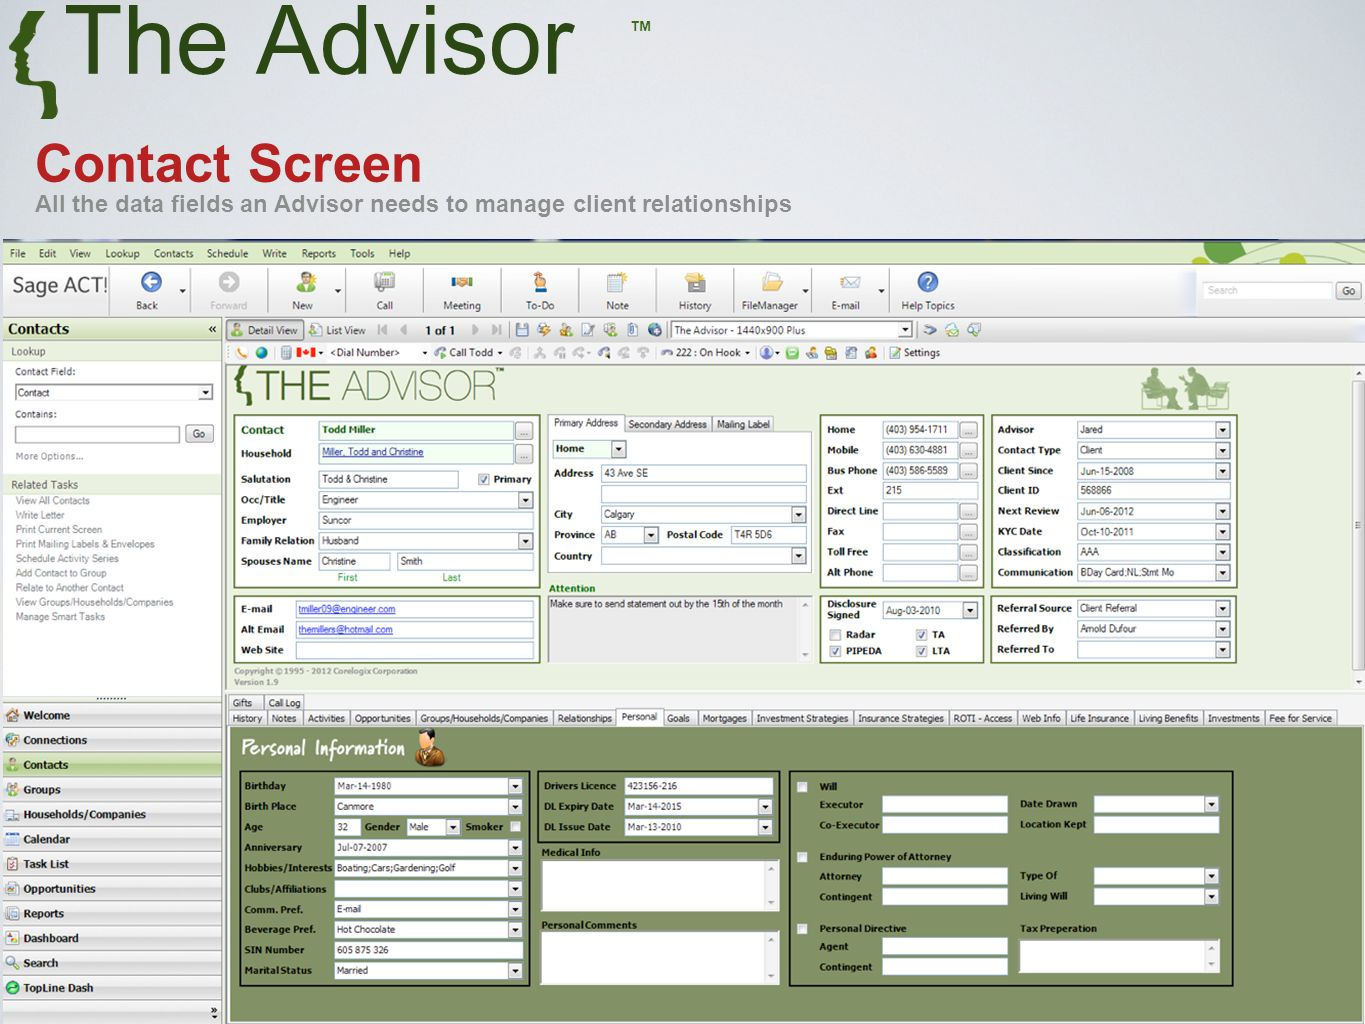 The Advisor Contact Screen All the data fields an Advisor needs to manage client relationships